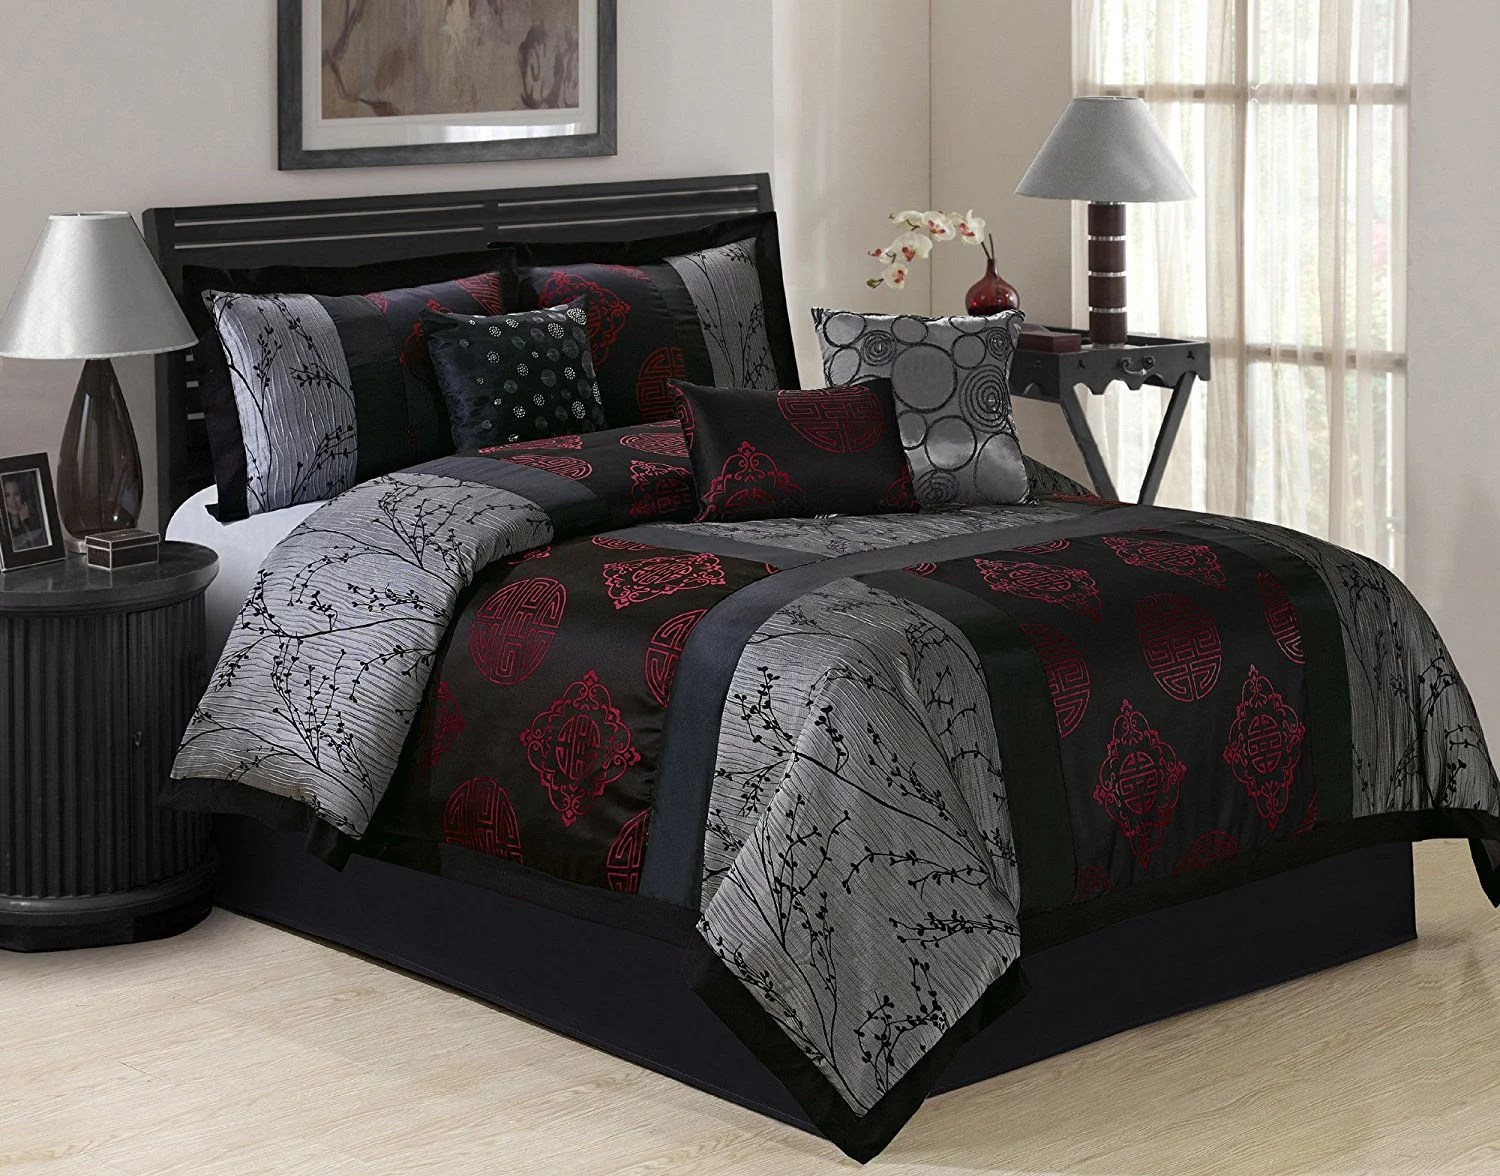 unique home shangrula 7 piece comforter bed in a bag on walmart bedroom furniture clearance id=52975